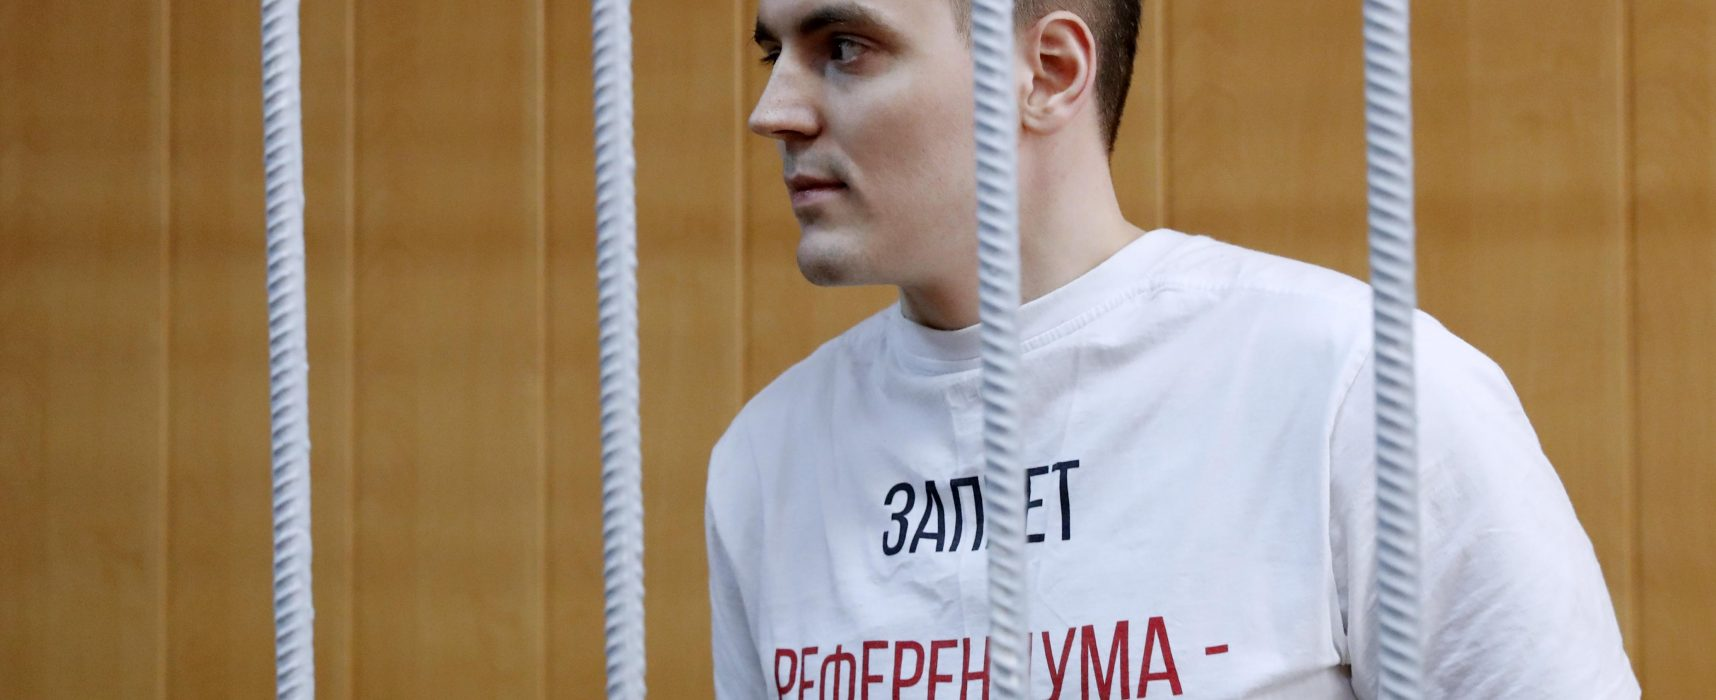 Russian Journalist Sokolov Jailed for Extremism After Calling for Referendum